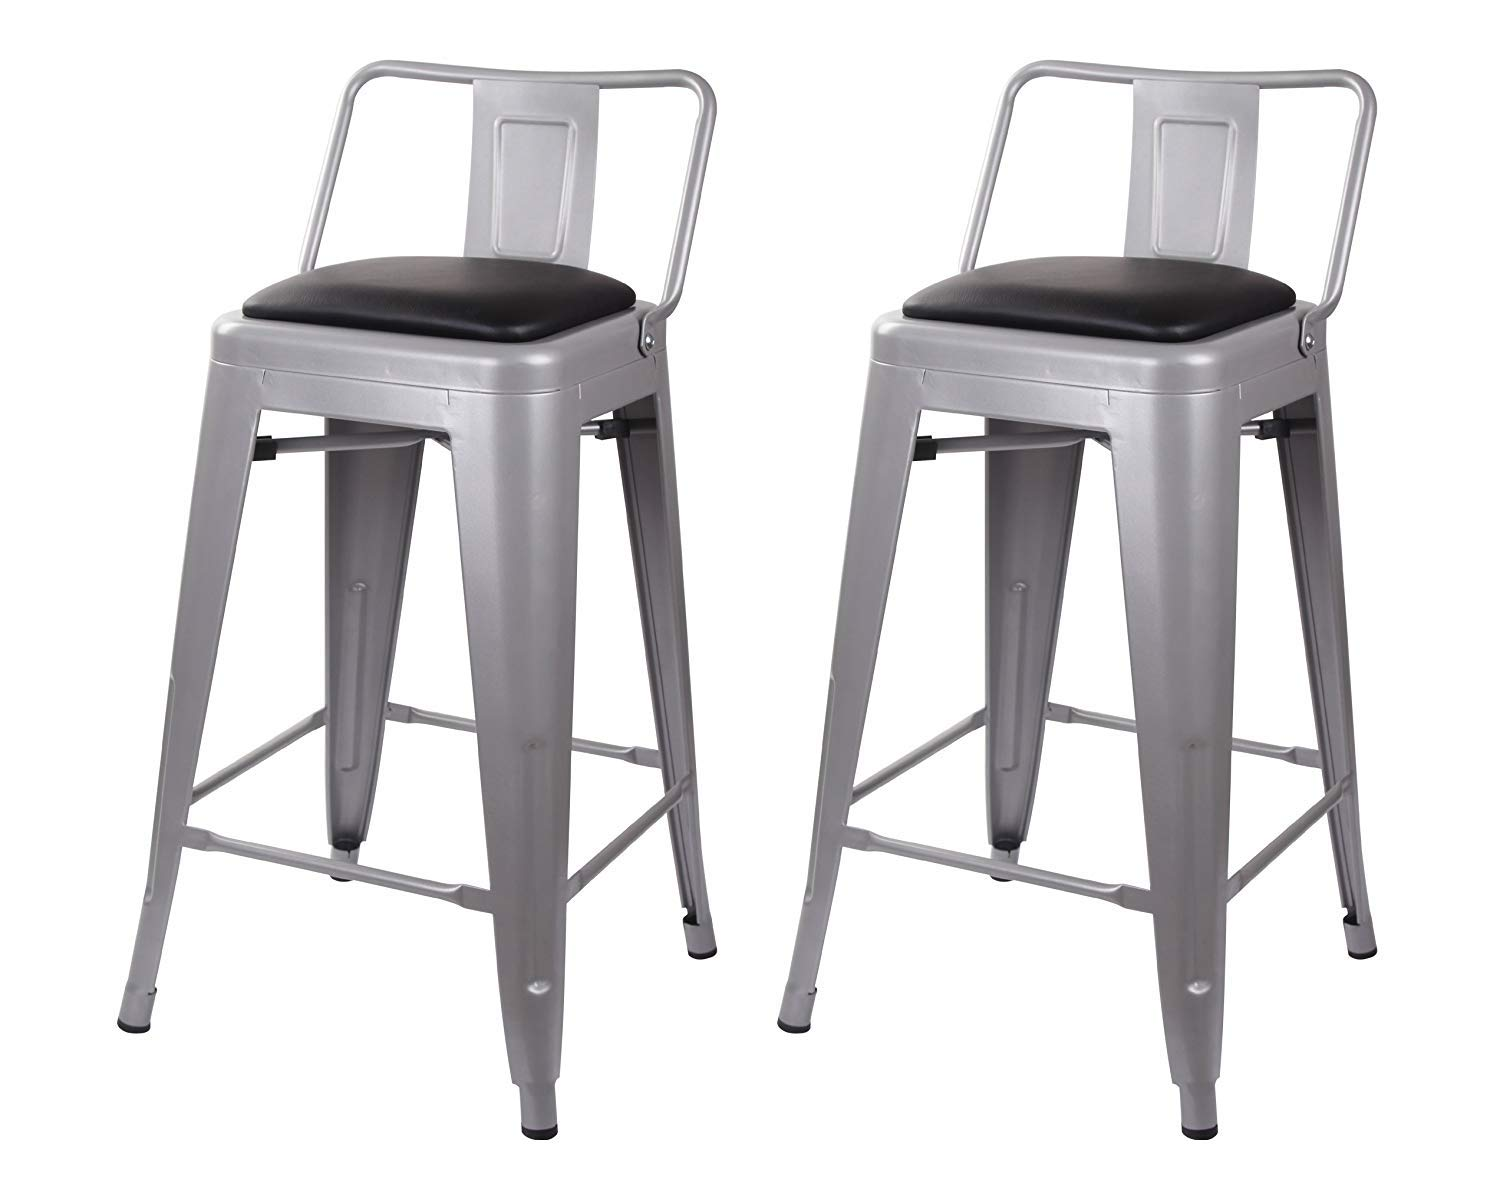 GIA 24-Inch Low Back Stool with Faux Leather Seat, Gray Black, 2-Pack